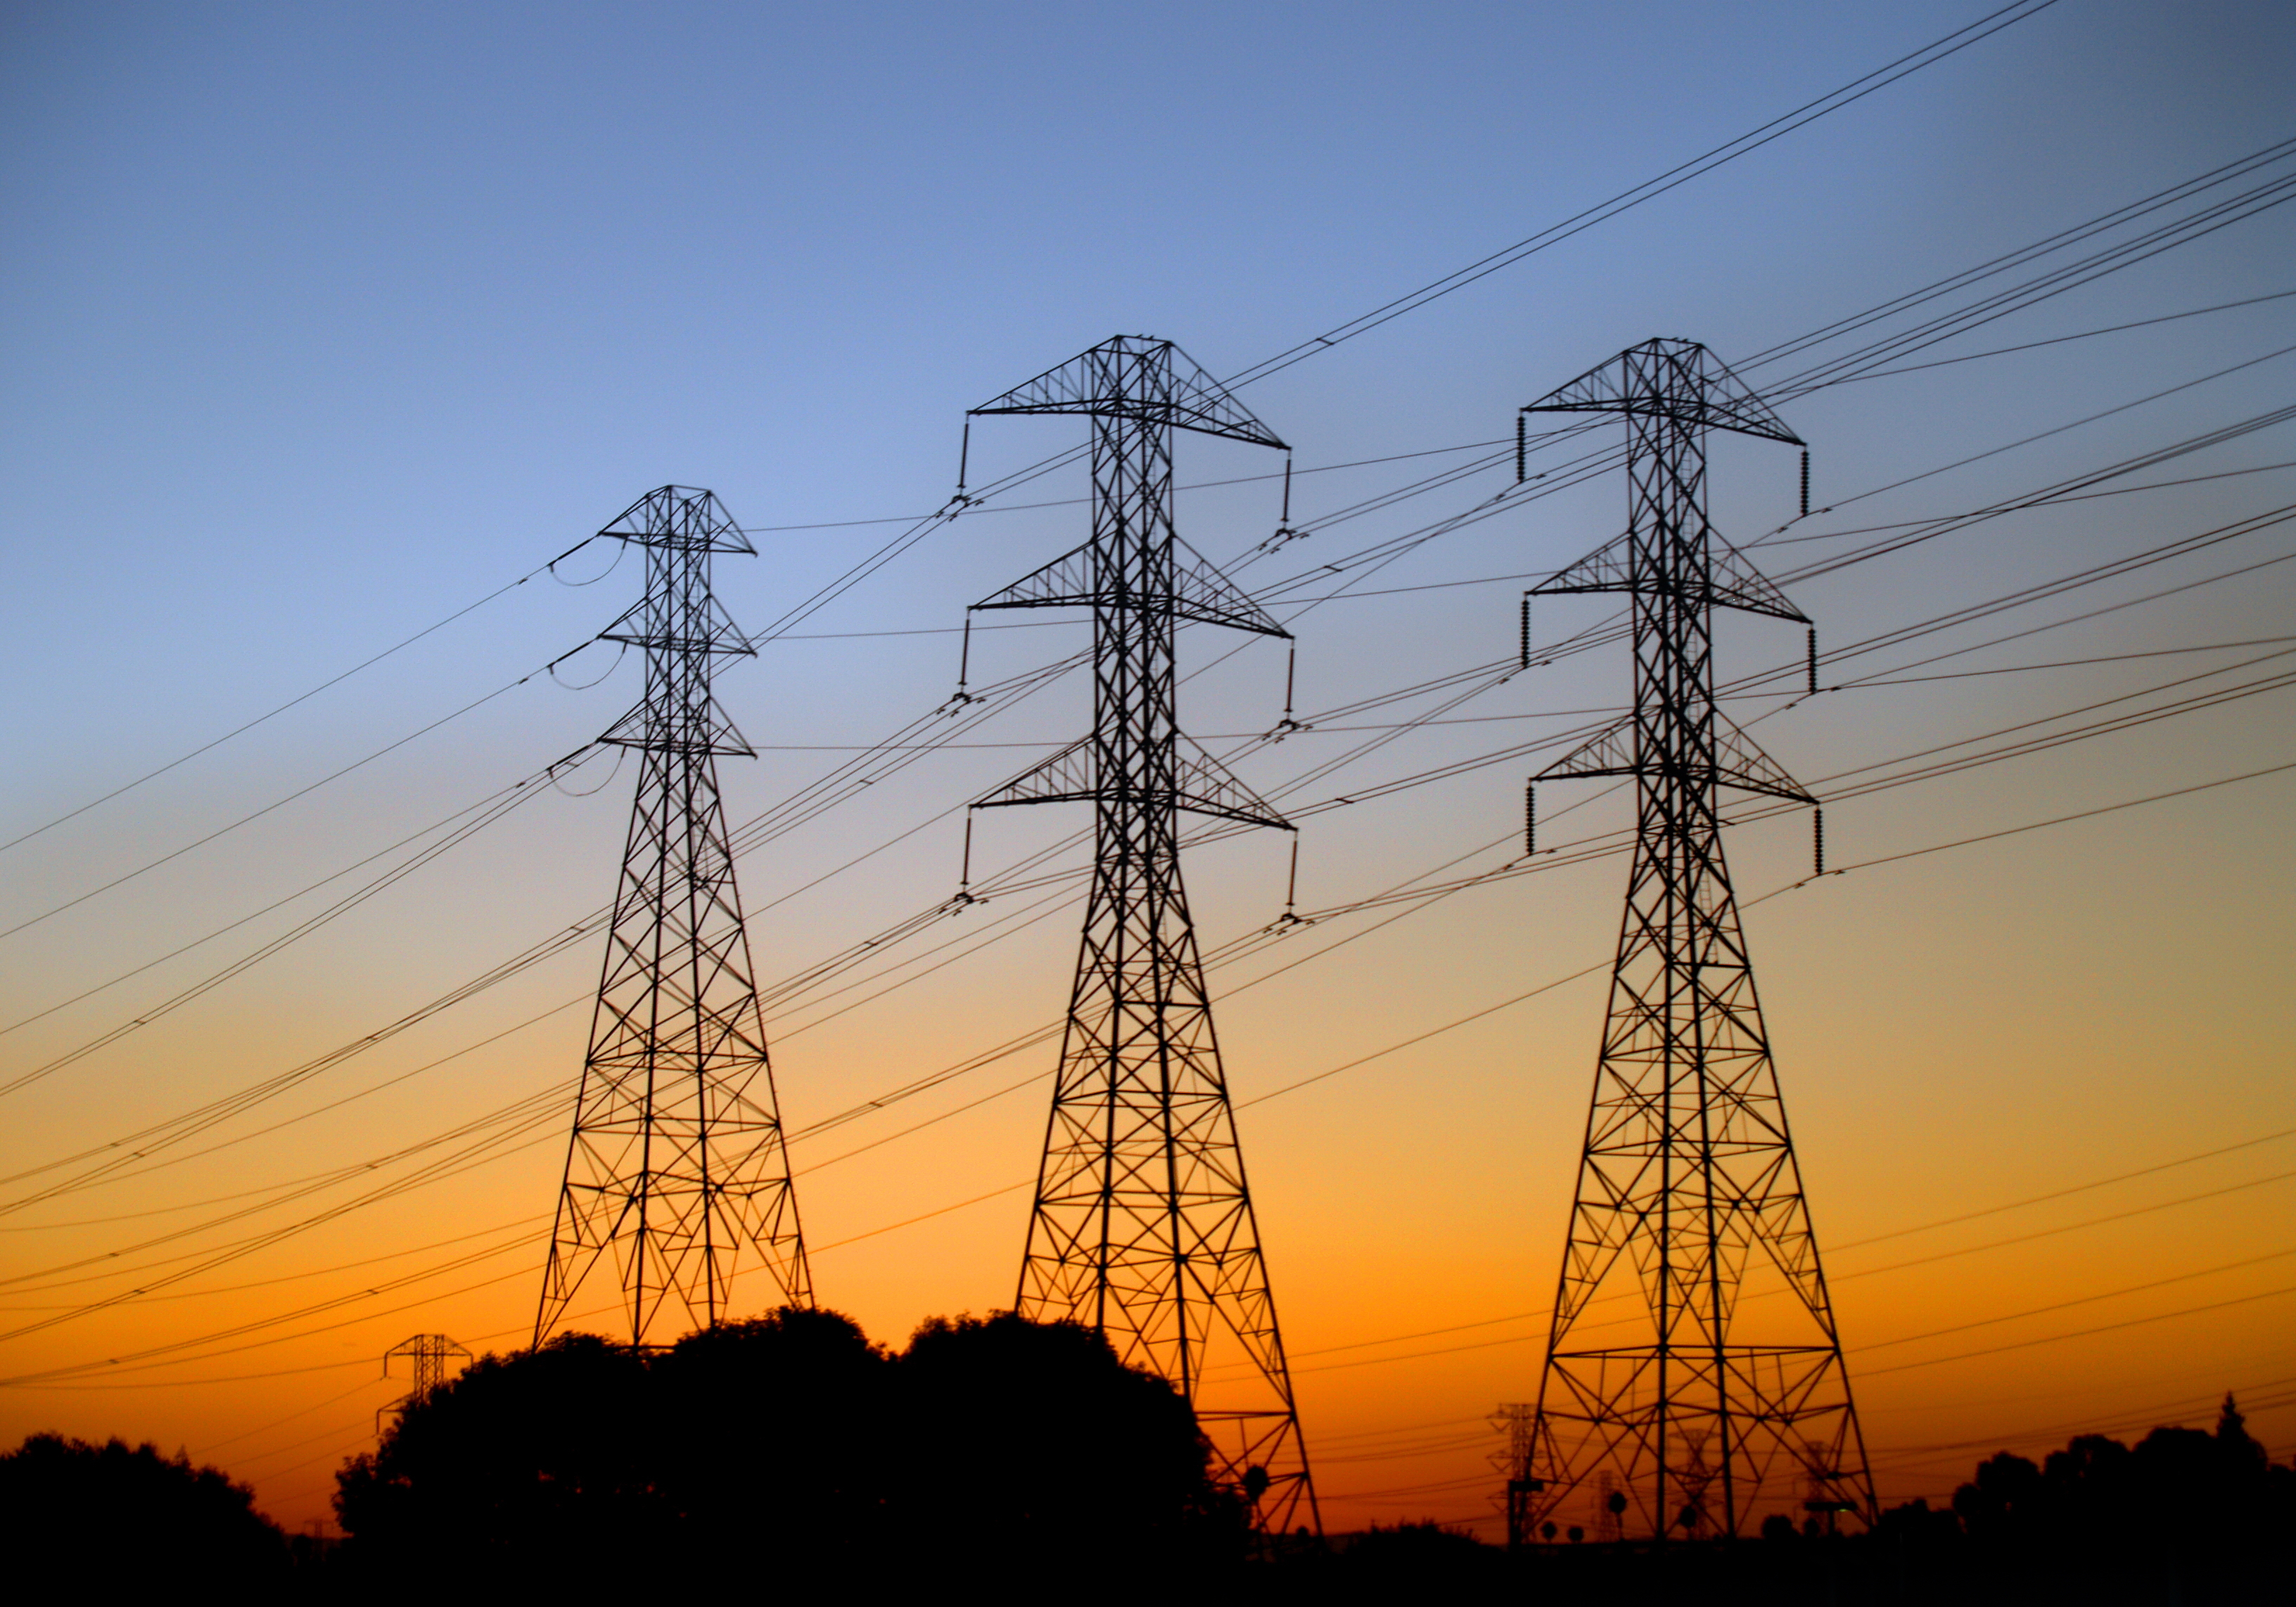 Urban Power Lines Act As Corridors For Both Native And